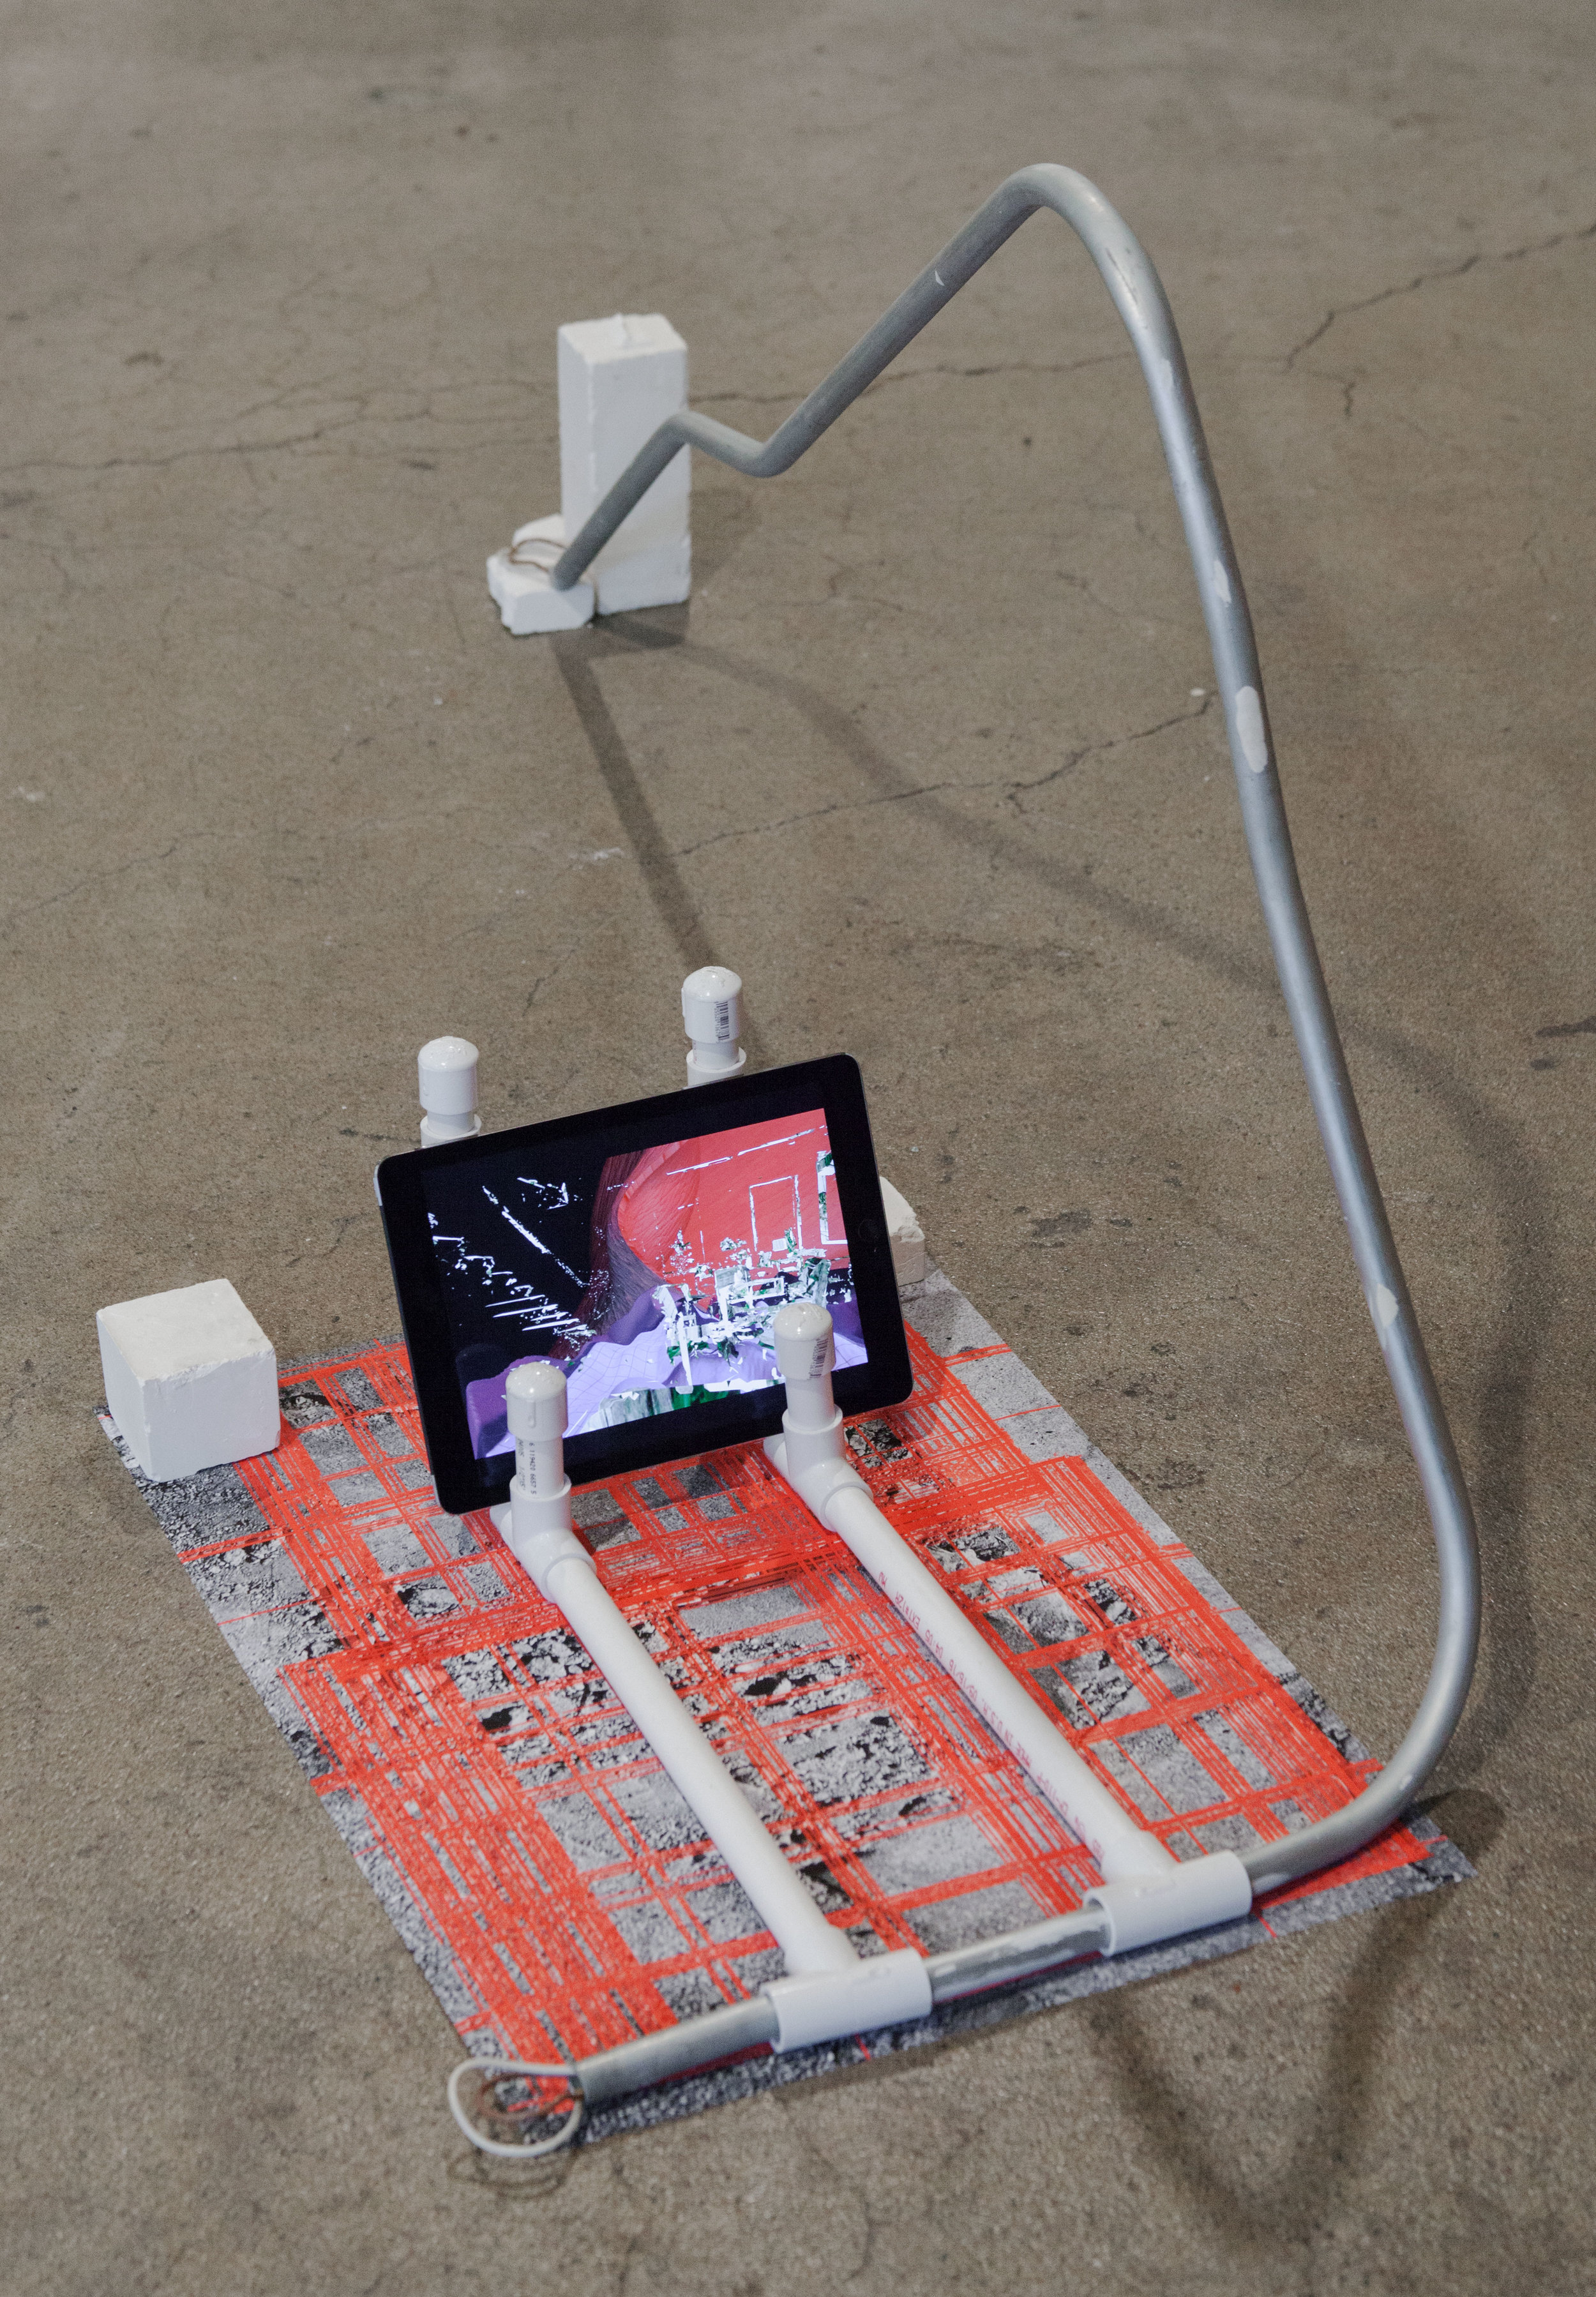 untitled, 2017, video, ipad, metal rod, pvc pipe, archival inkjet print & plaster, Gallery 4Culture, Photo by Max Cleary